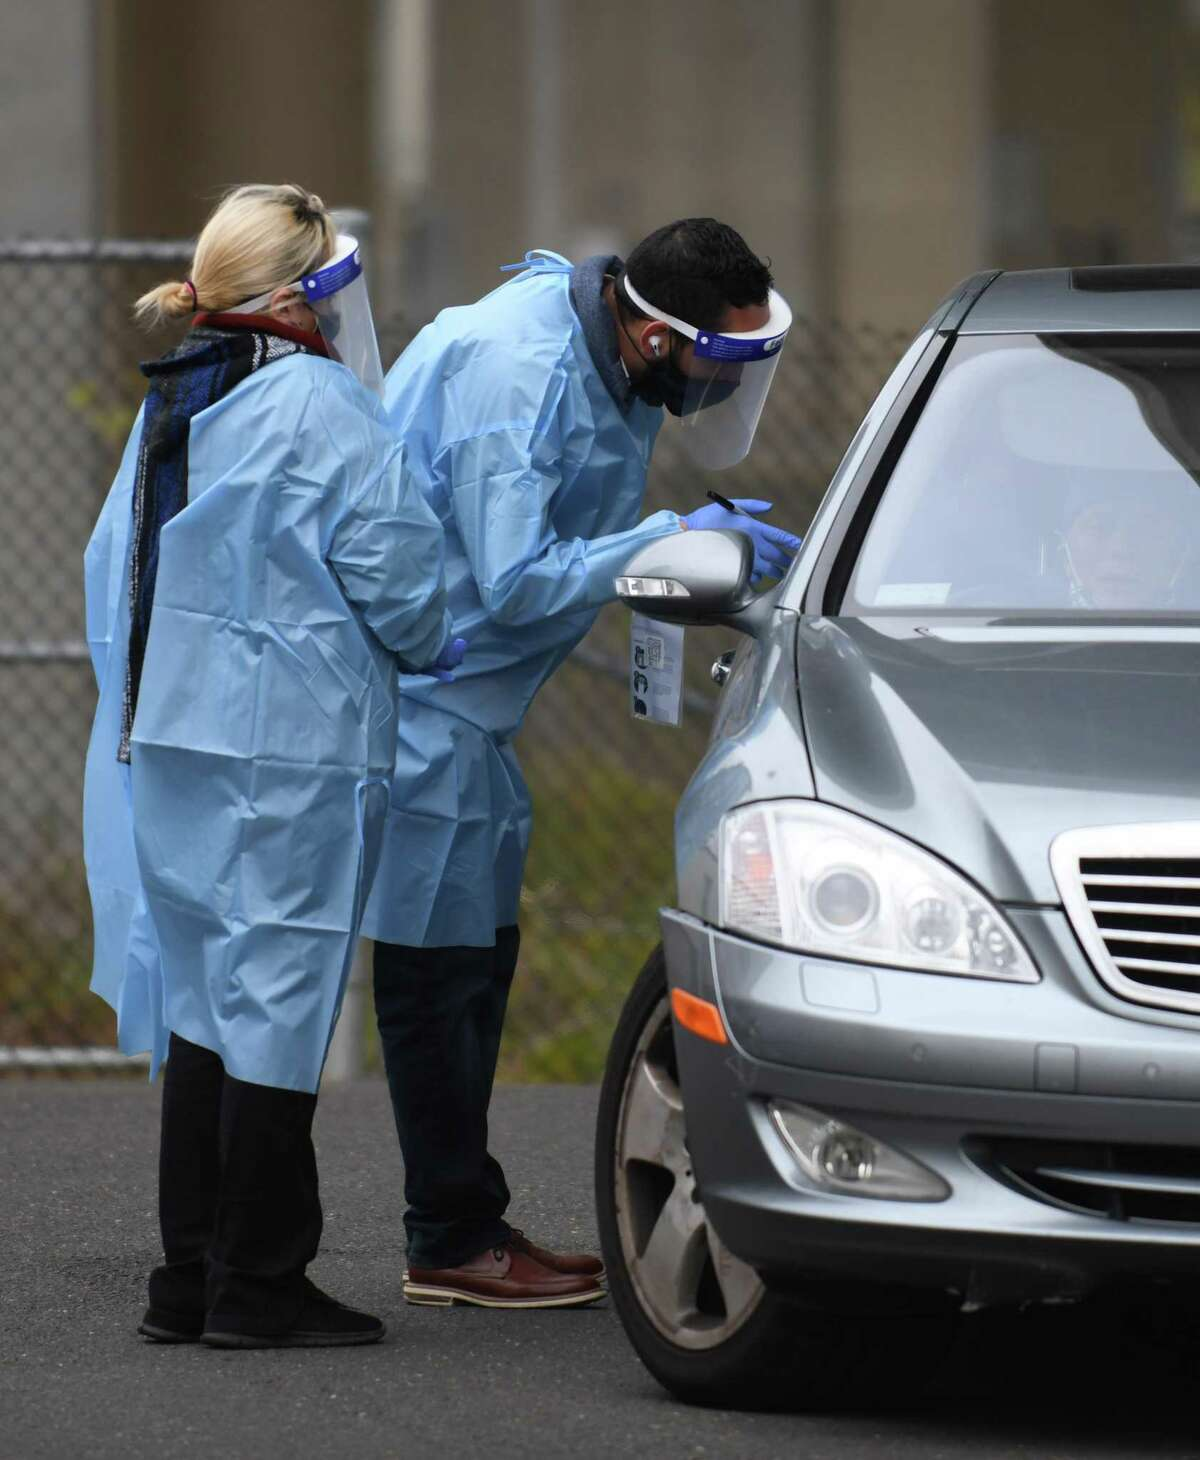 Laboratory technician Daphne Henri and office manager Javier Ortiz administer drive-thru COVID-19 tests outside The Doctors Office in the Cos Cob section of Greenwich, Conn. Tuesday, Nov. 17, 2020. The Doctors Office offers drive-thru COVID-19 nasal PCR tests during normal business hours.